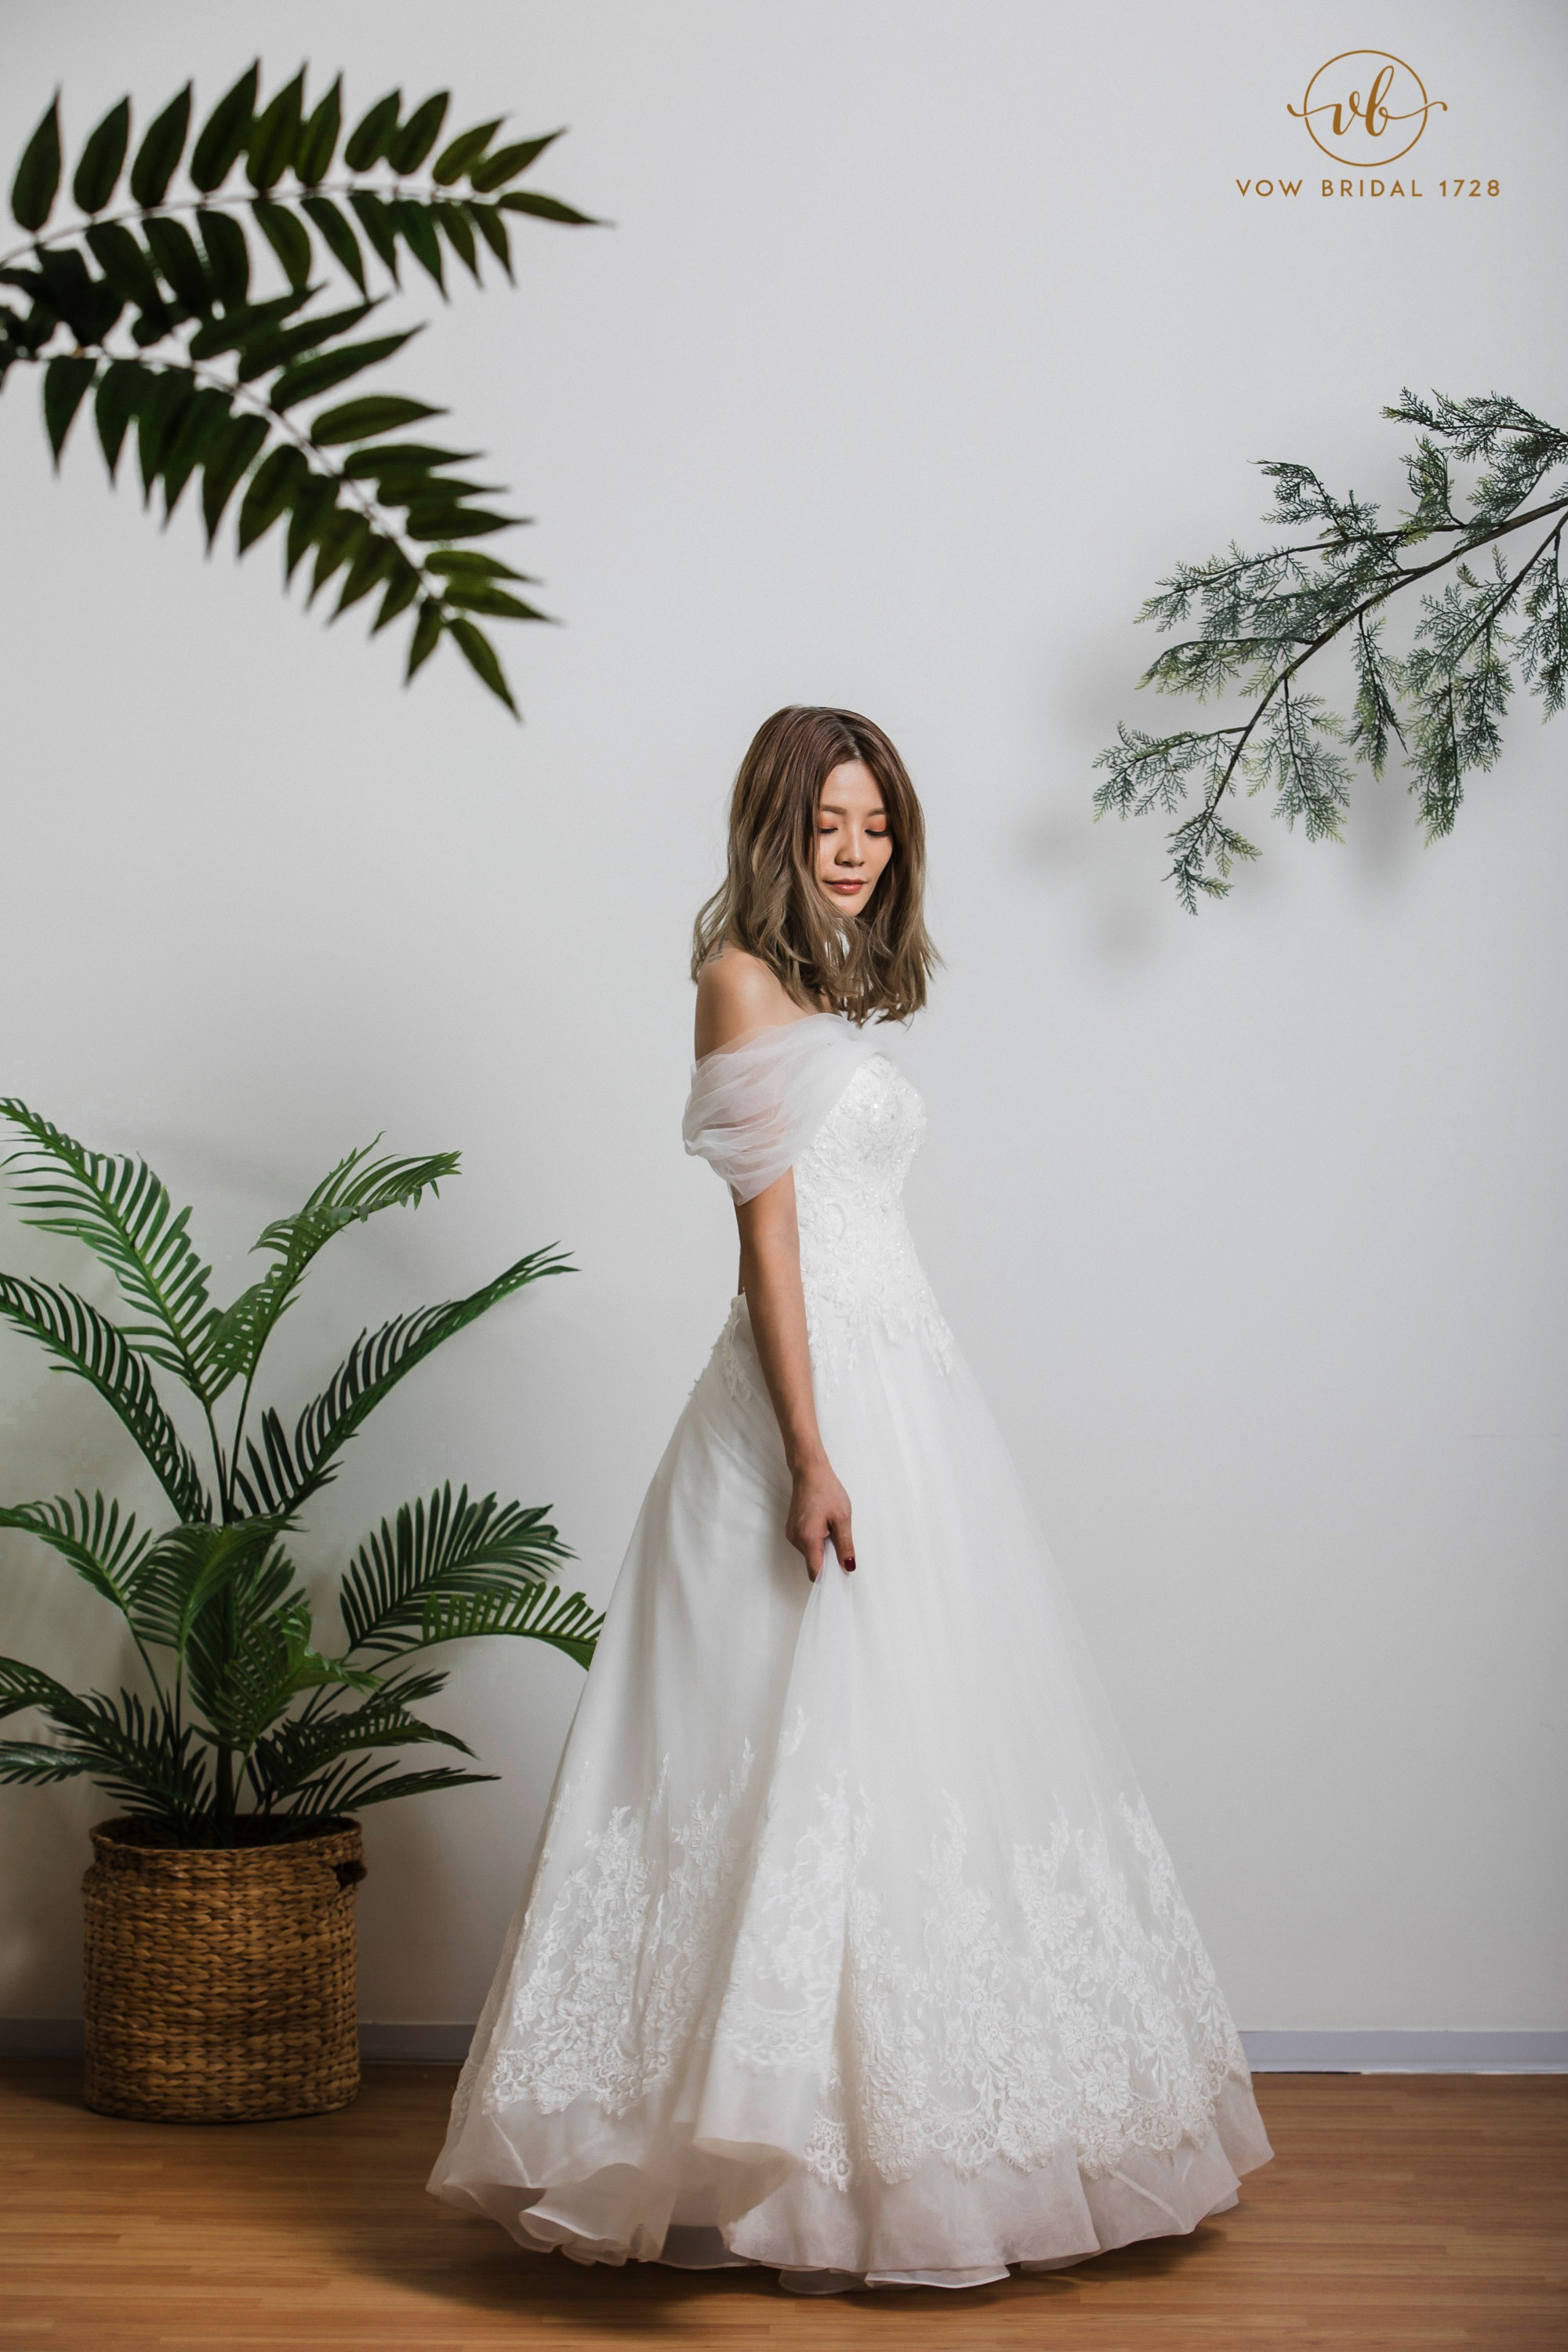 Rent designer gowns at affordable price kuala lumpur for Cost to rent wedding dress in jamaica